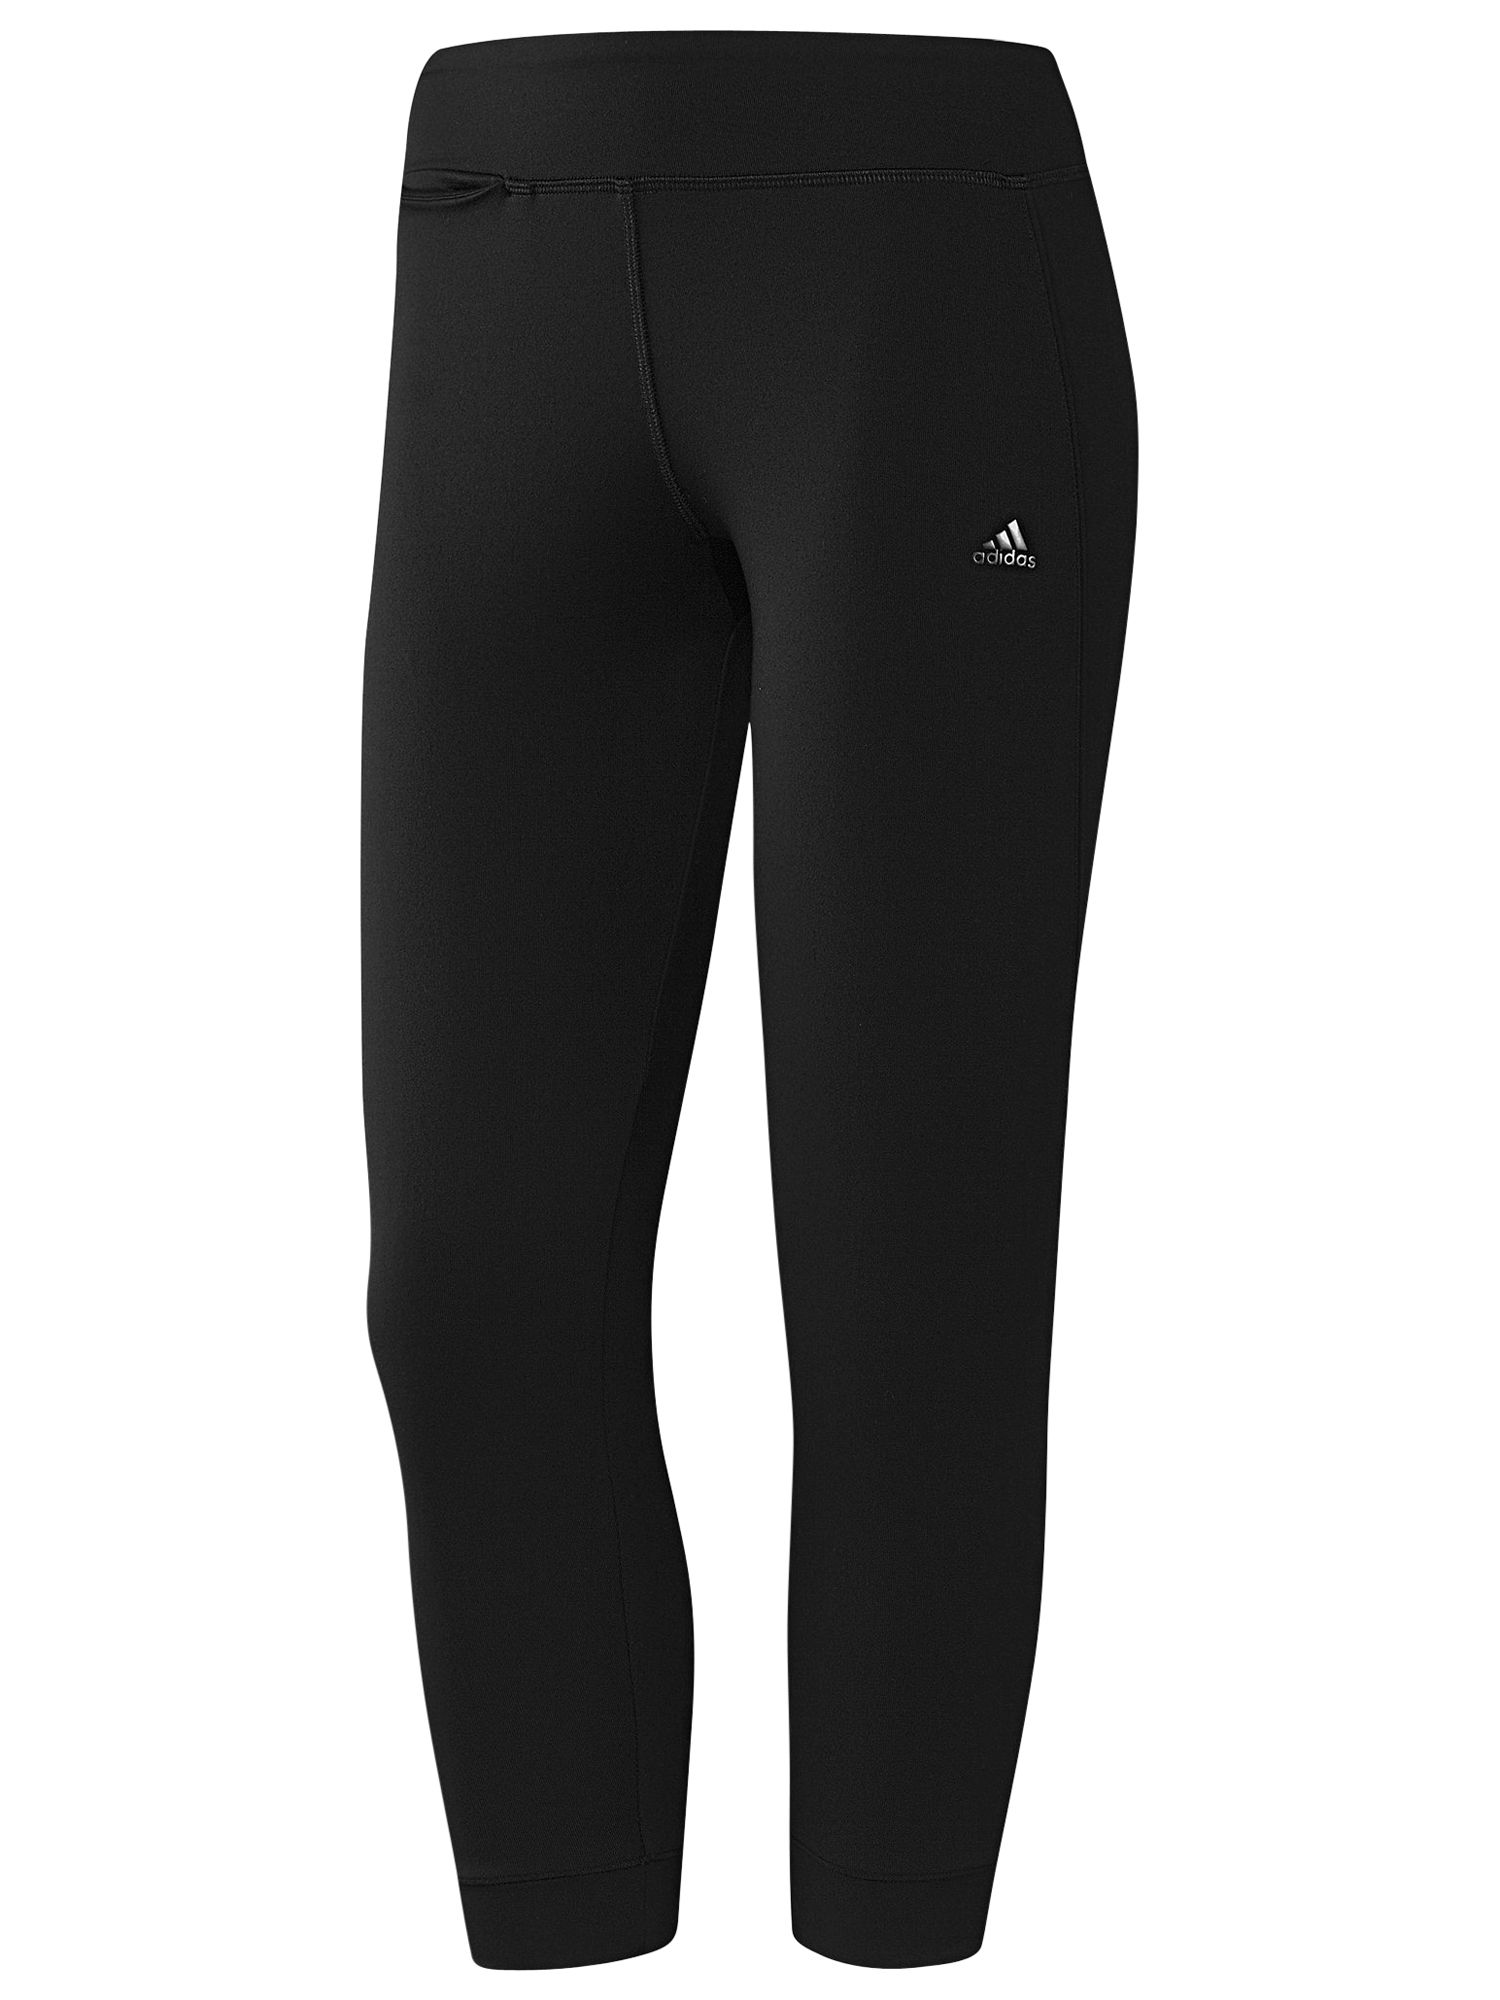 Adidas Multifunctional Essentials 3/4 Tights, Black/Grey